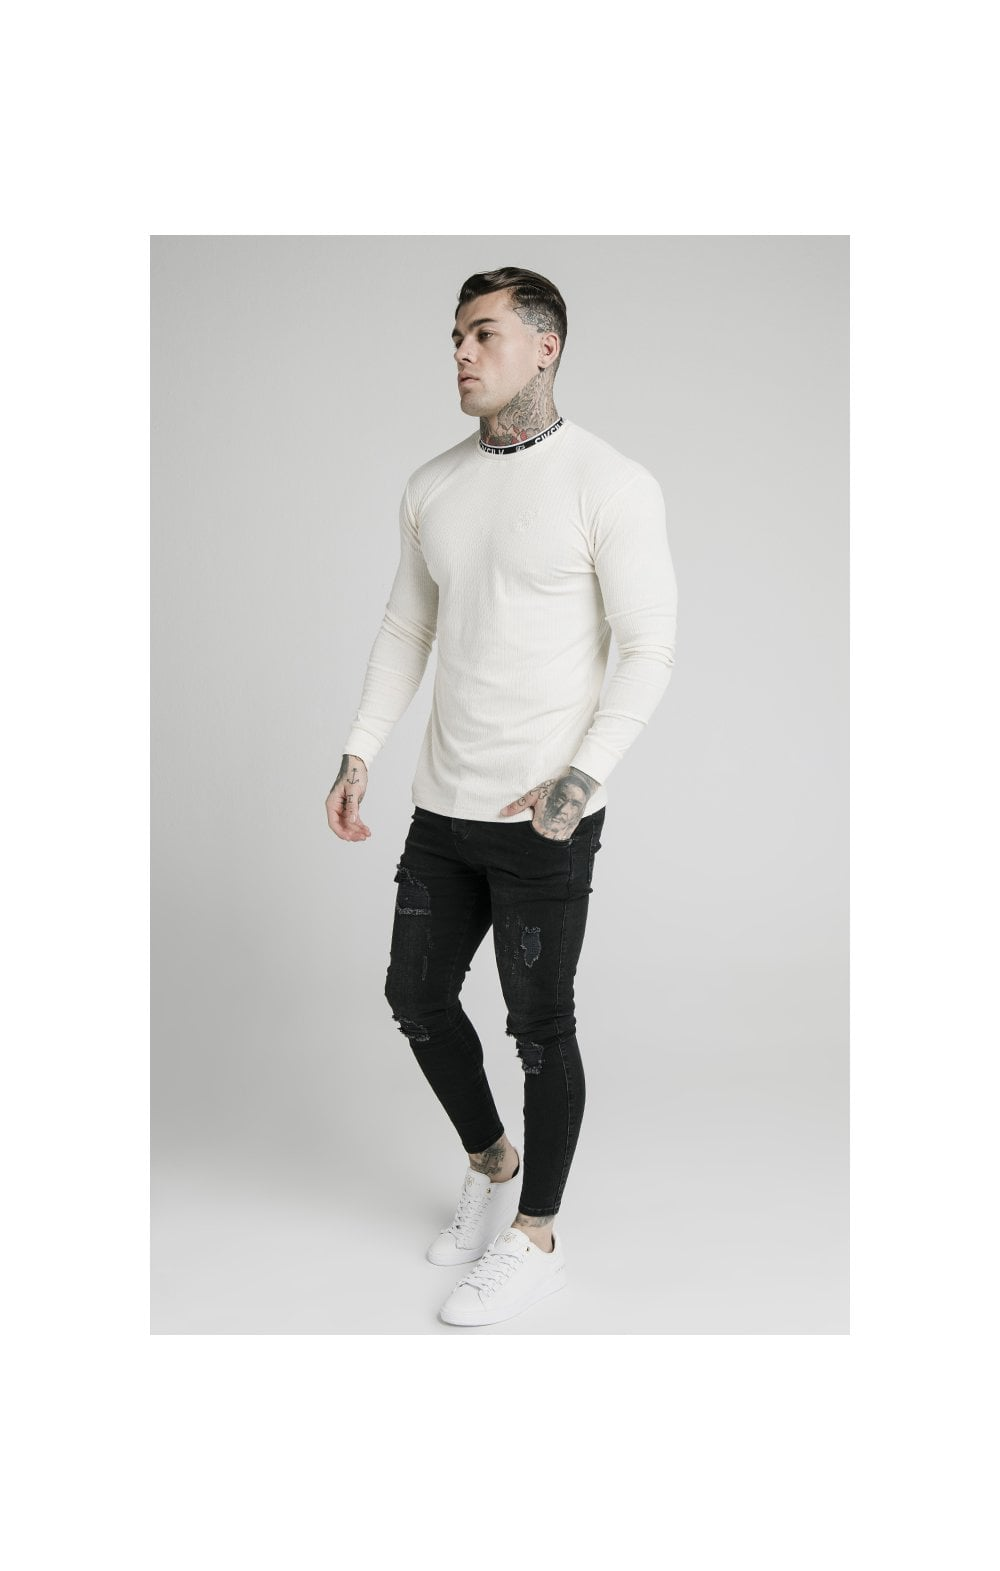 SikSilk L/S Rib Knit Tee - Off White (2)